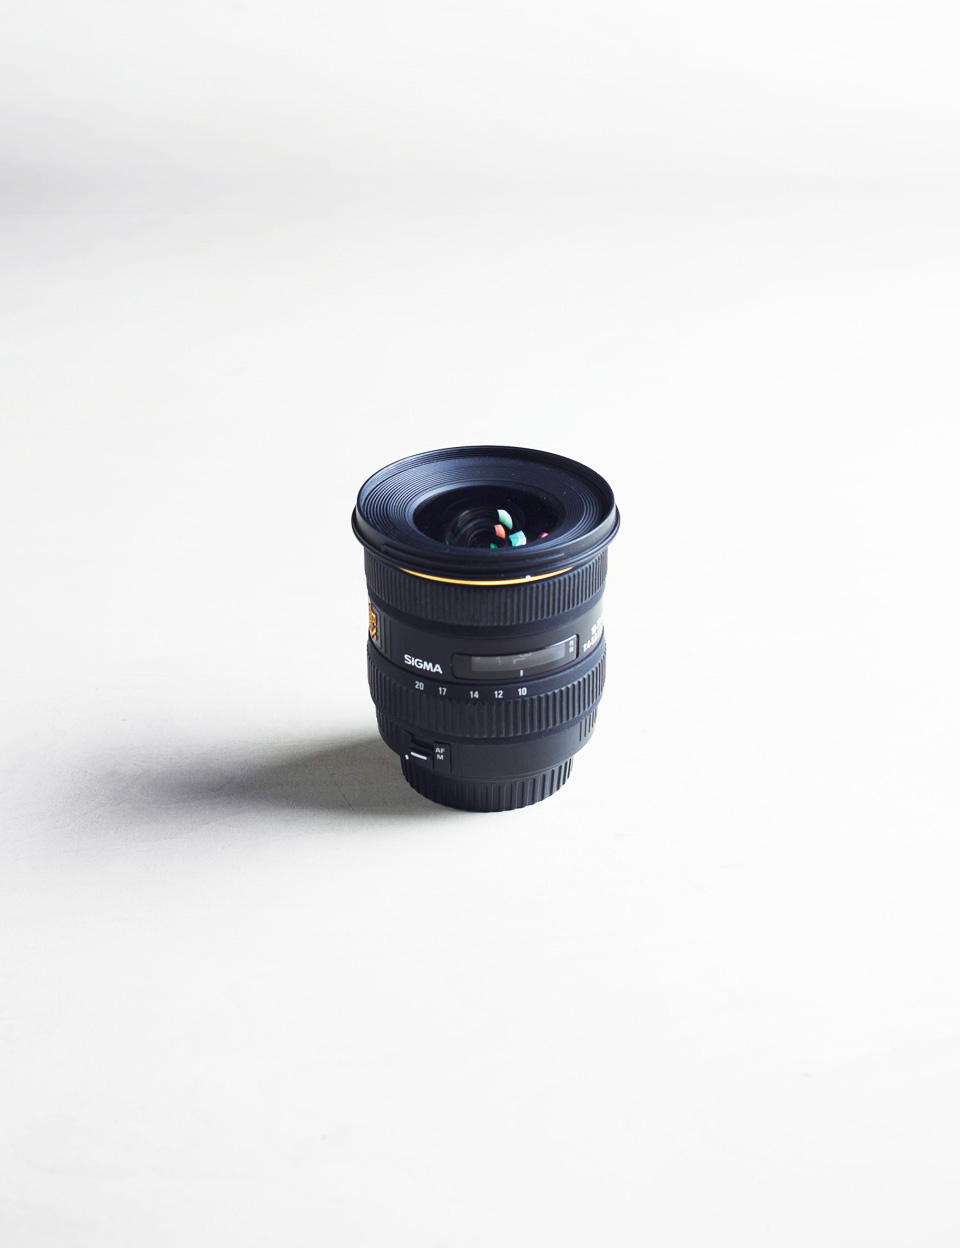 I am now selling my Sigma 10-20. Anyone interested ?